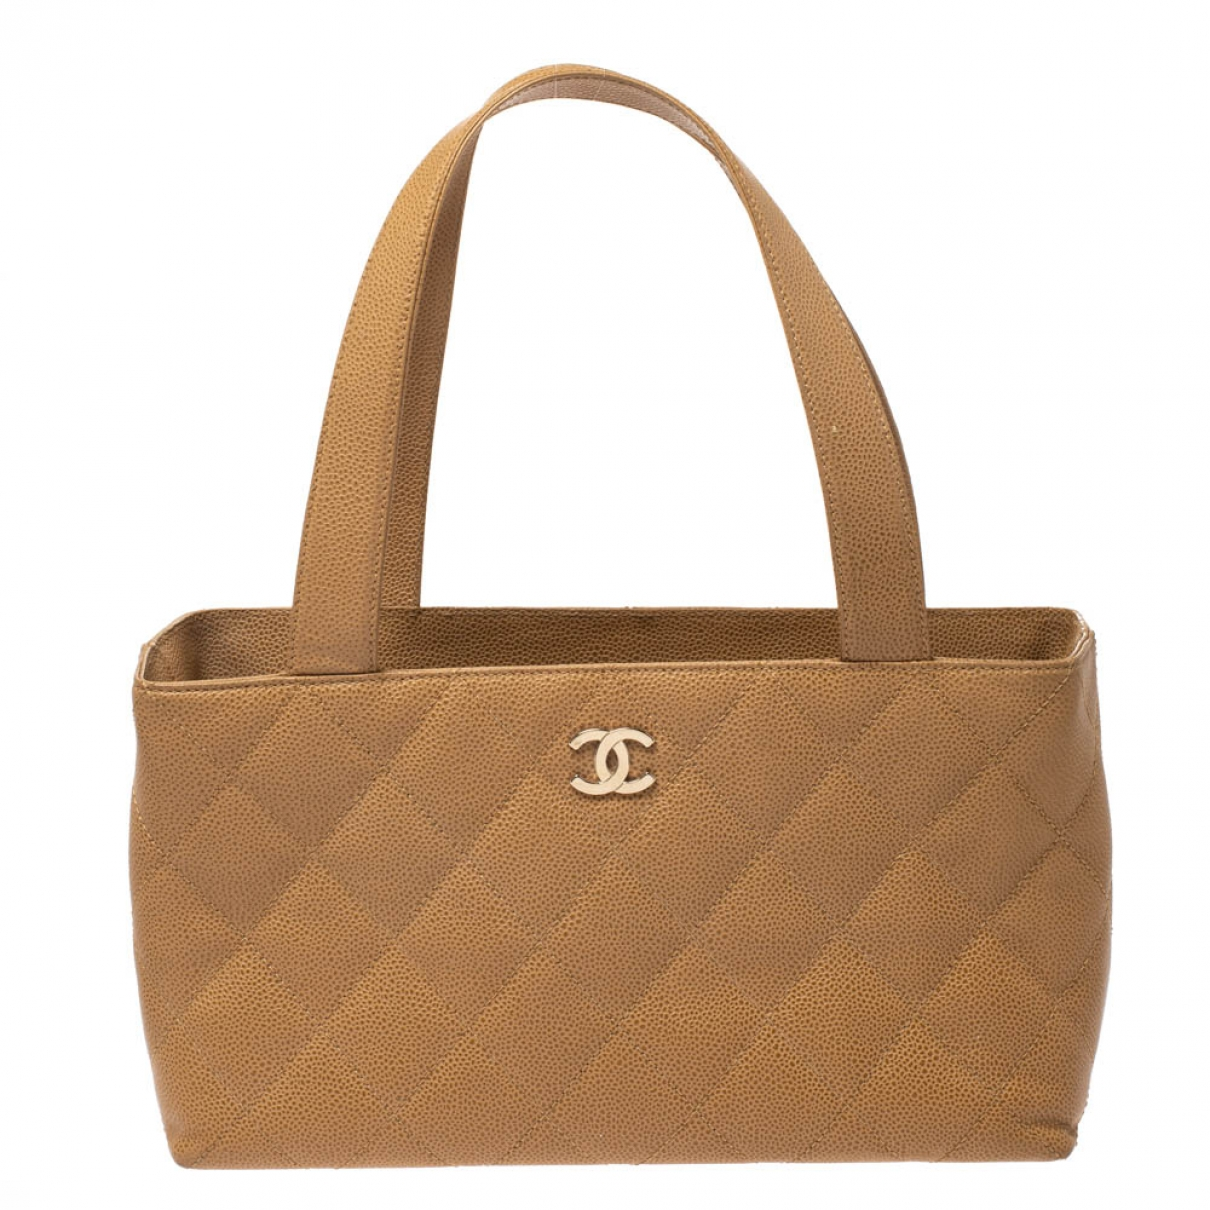 Chanel \N Beige Leather handbag for Women \N